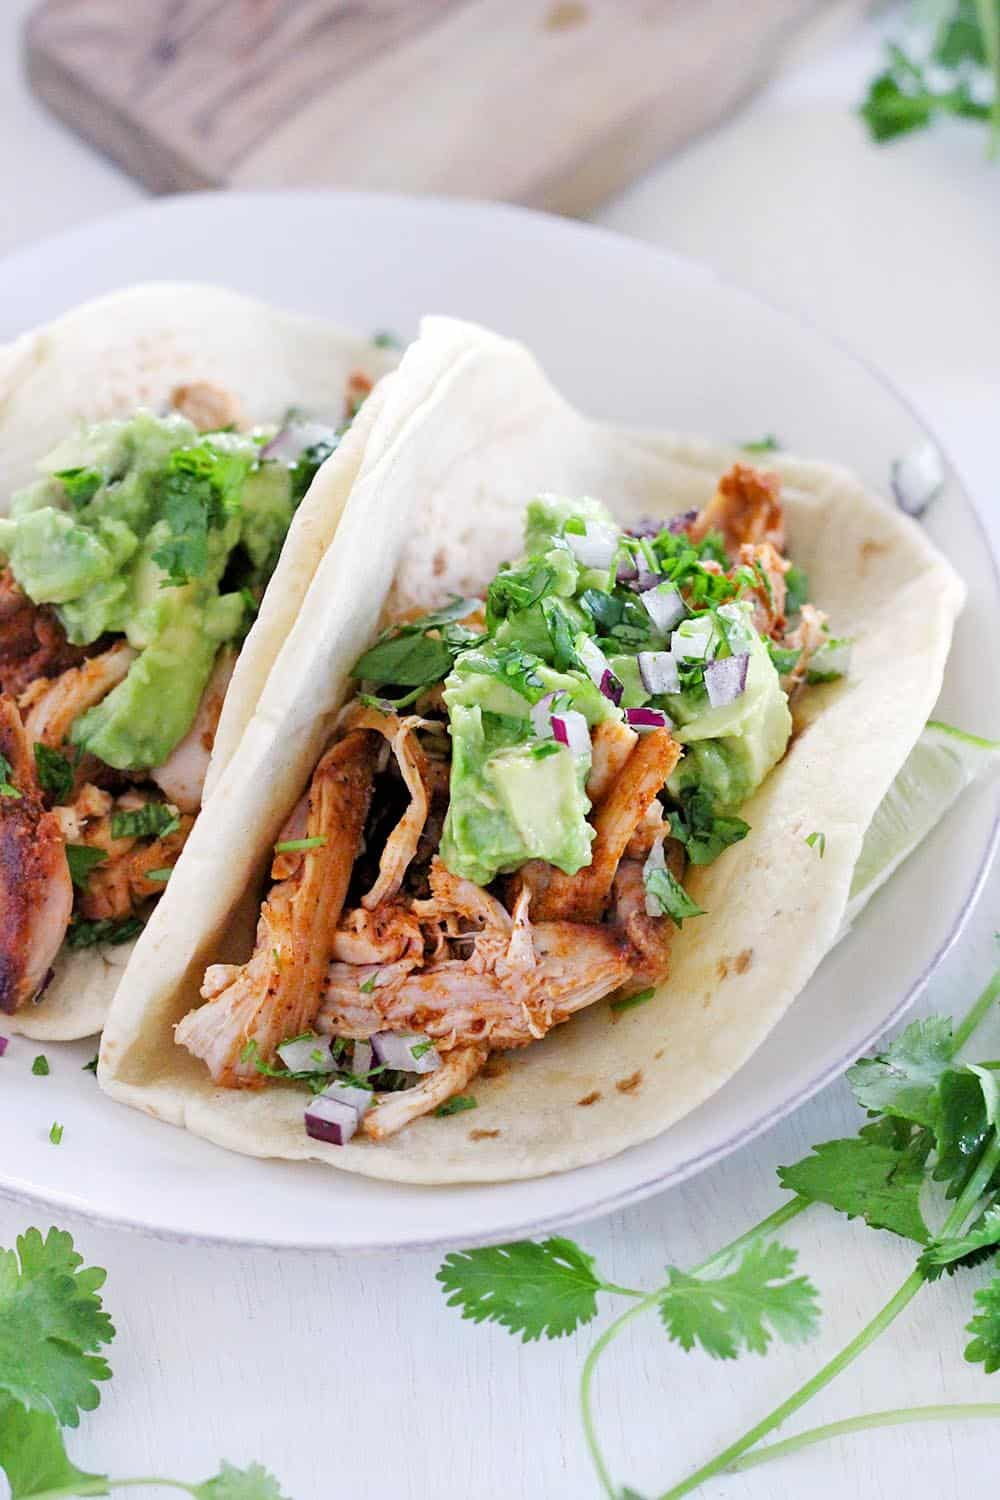 These smoky chicken and avocado tacos come together in only 20 minutes! They'll be your new favorite easy weeknight recipe for taco night and the whole family will love them. #TacoTuesday #MexicanFood